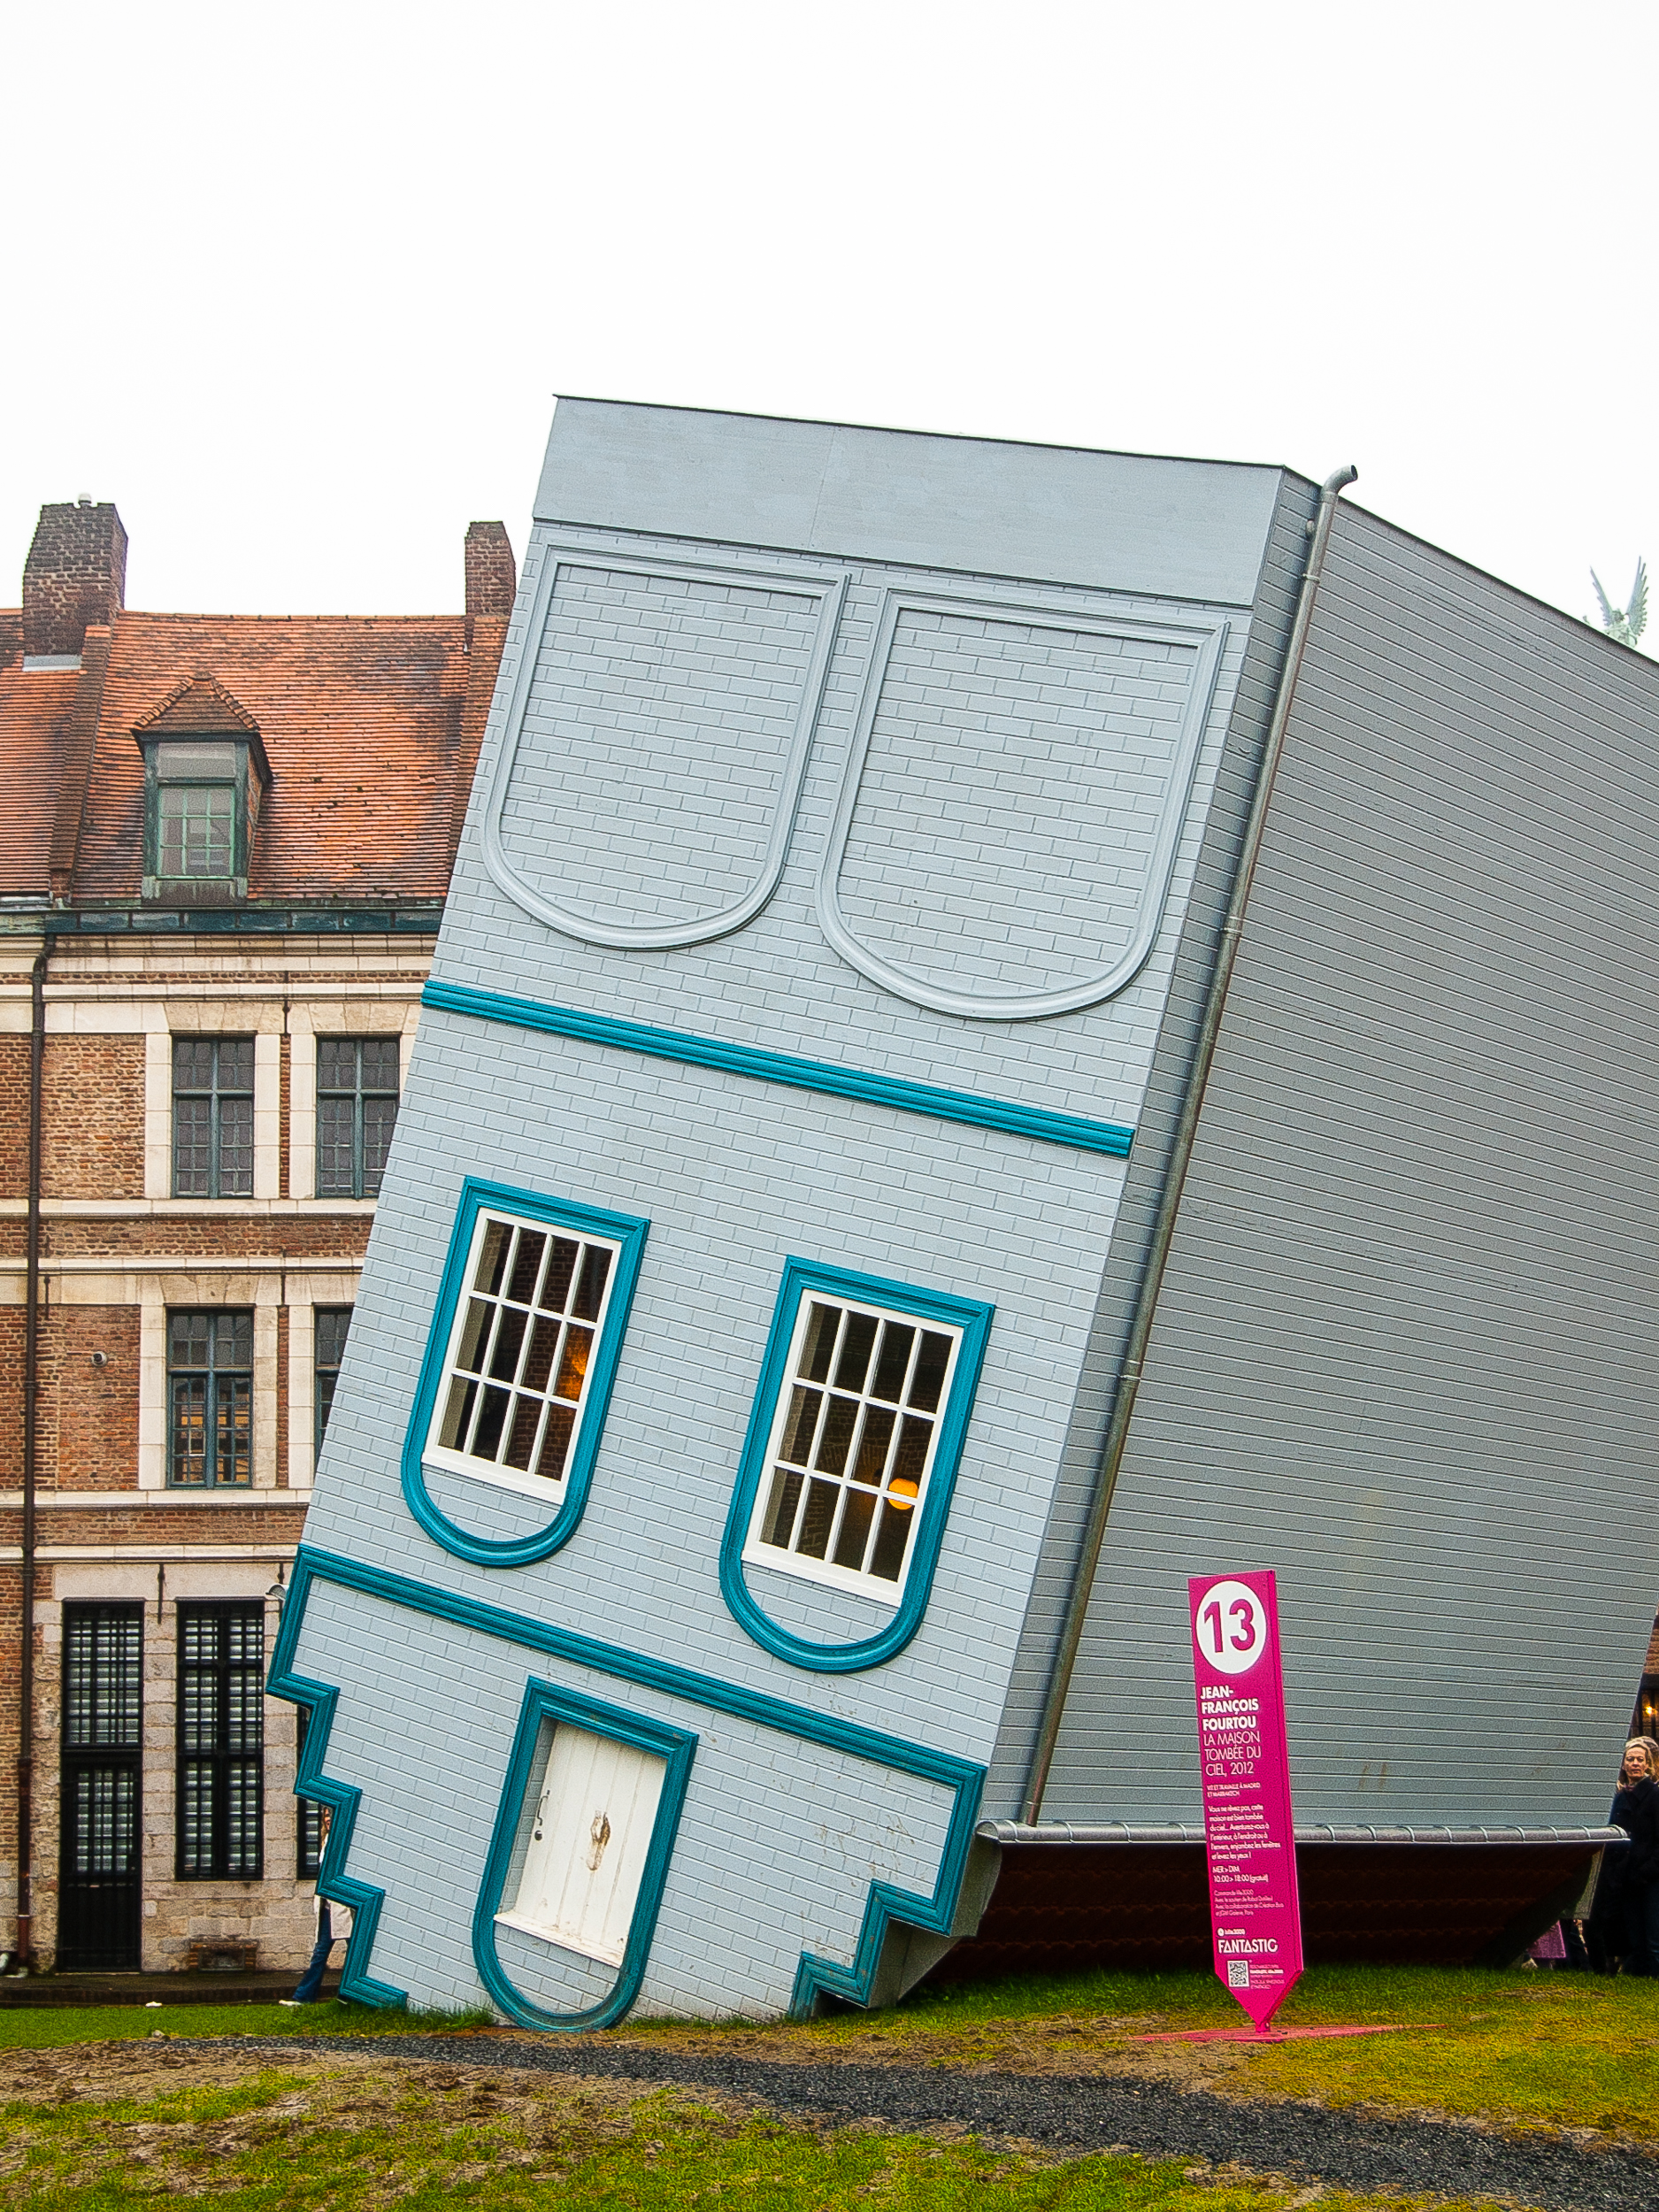 I was lucky that my visit coincided with a six month arts festival called Lille Fantastique. There were exhibits all around the city. Pictured here is the Maison Tombée du Ciel.